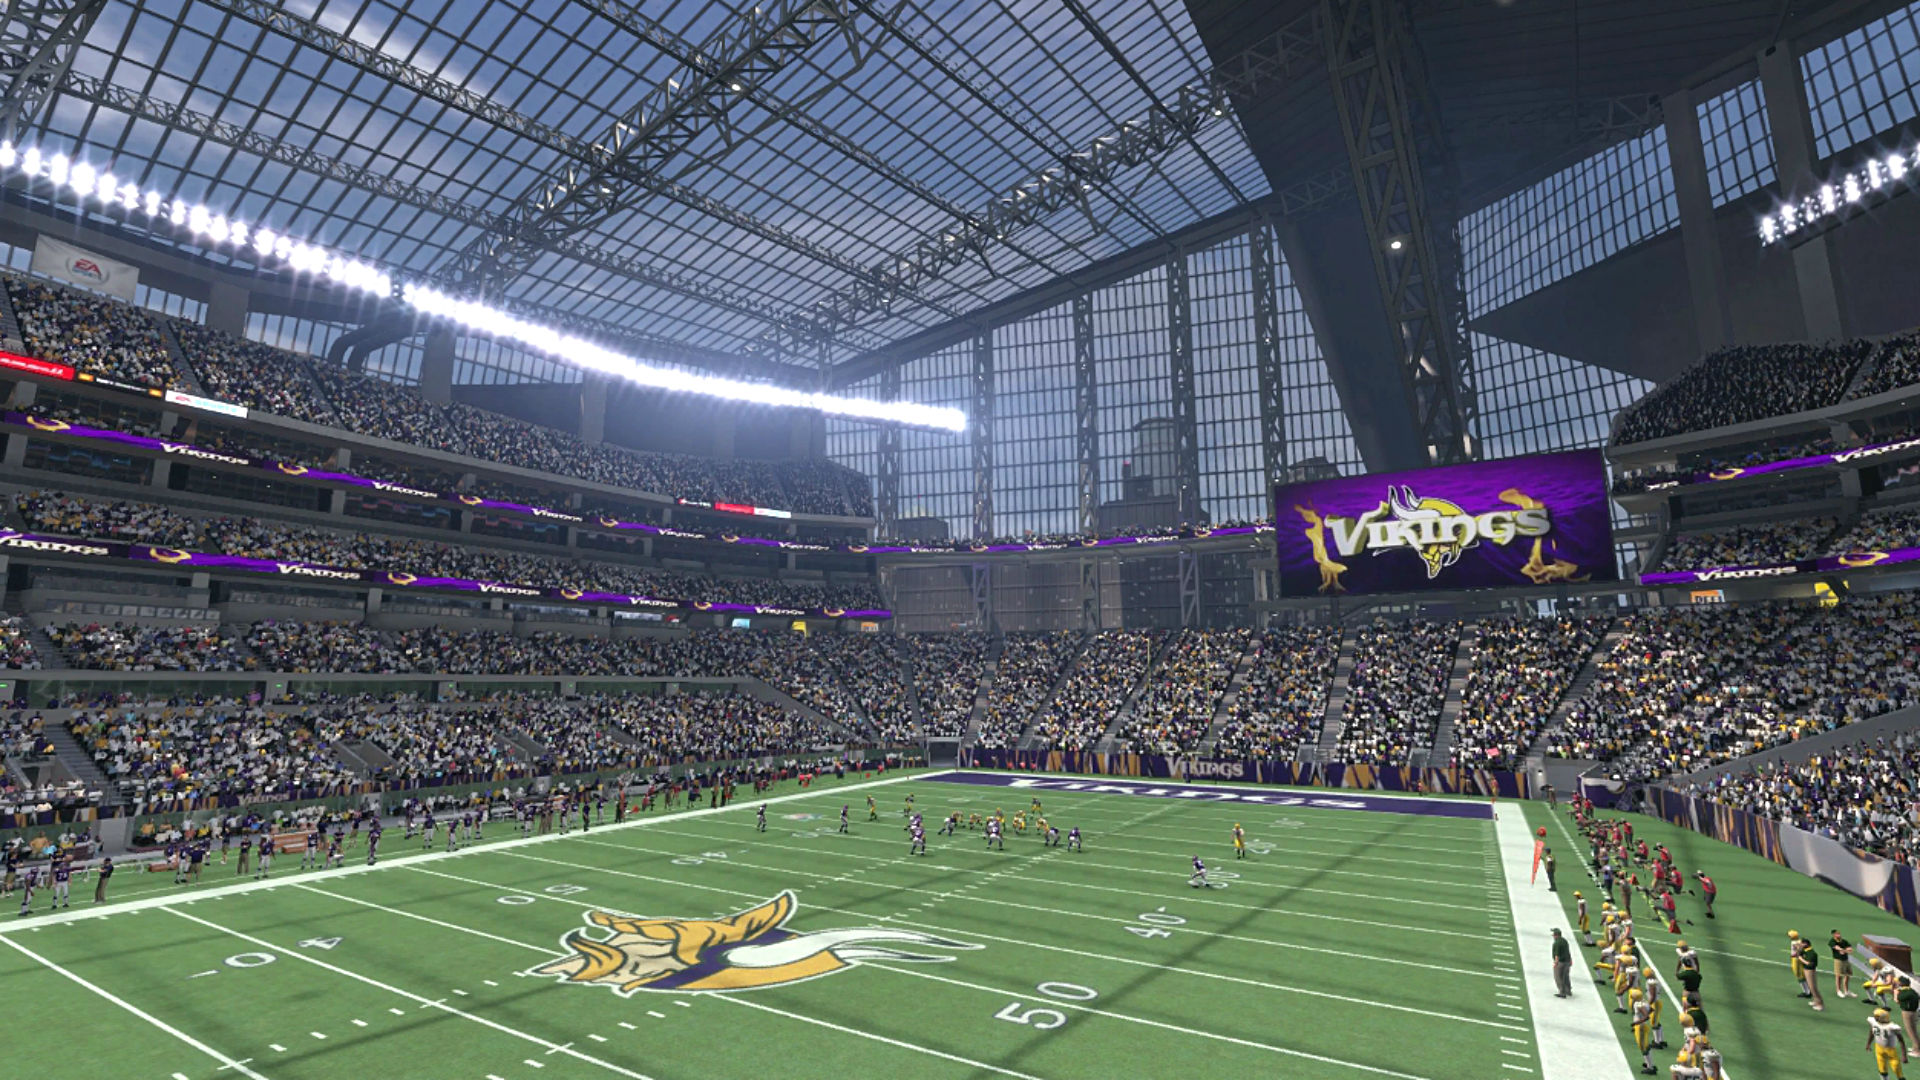 New Vikings Stadium Opening Next Season Debuts In Madden